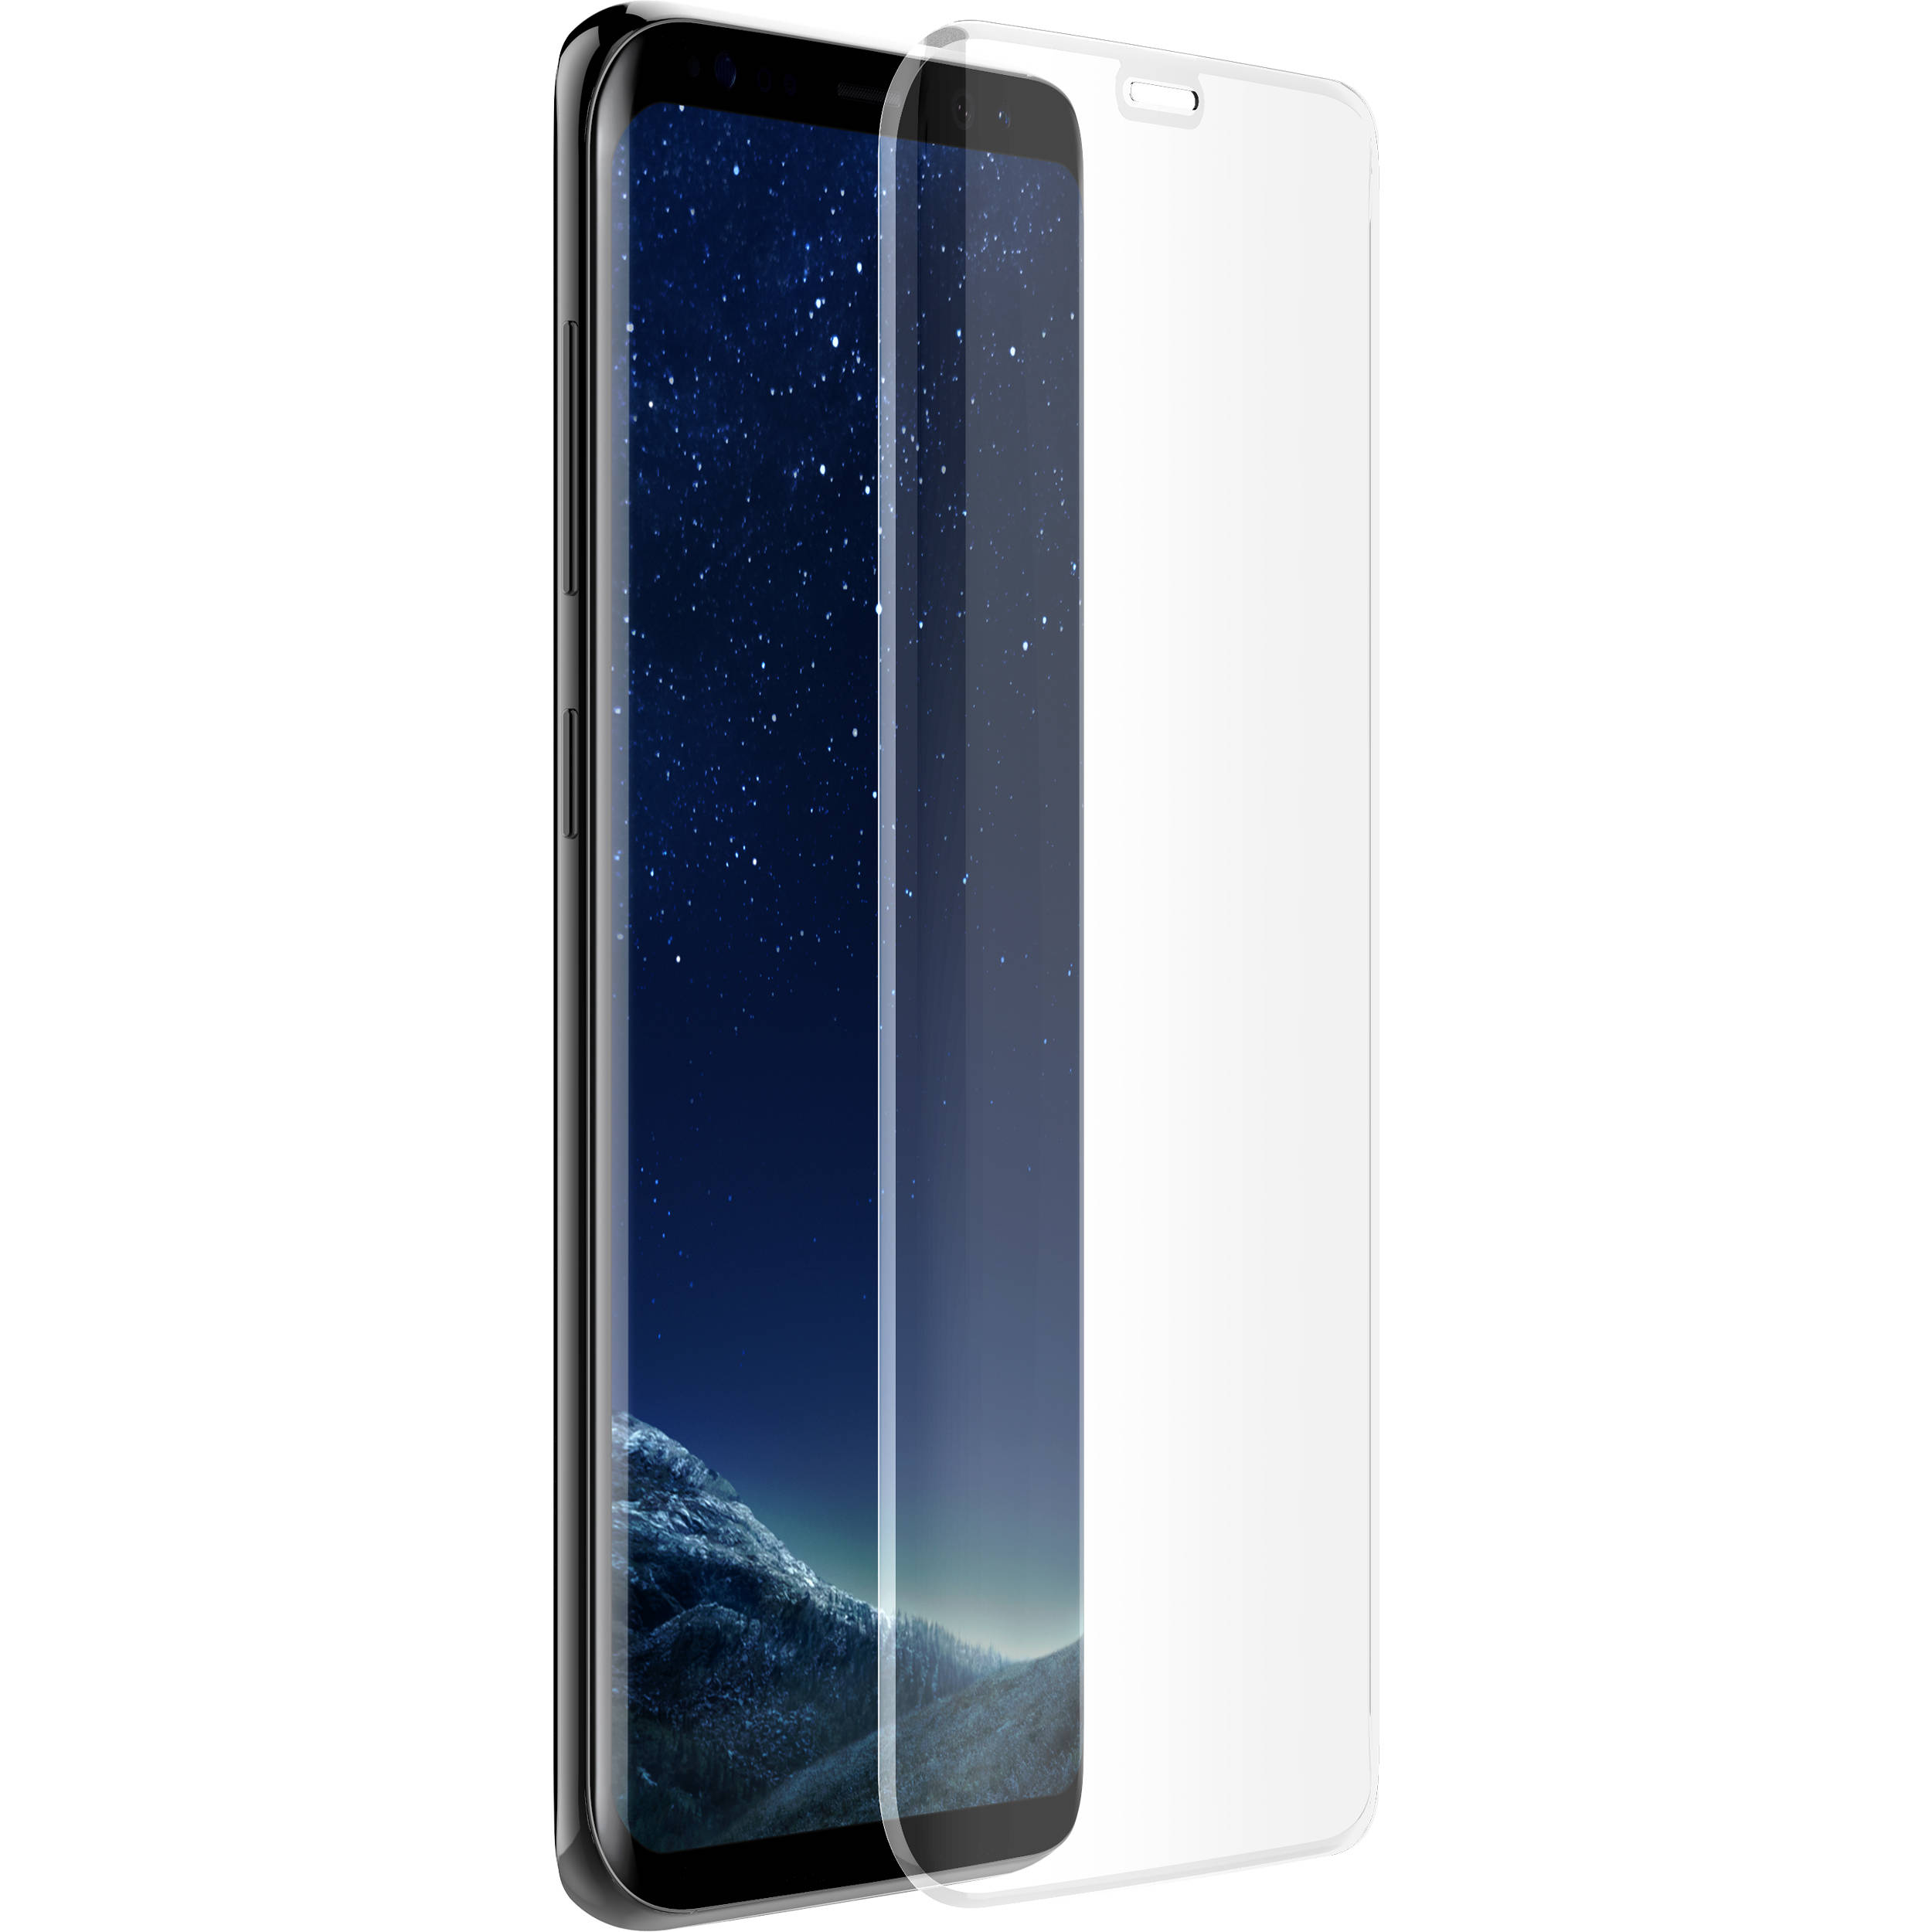 huge discount ee12a 25e05 OtterBox Alpha Glass Screen Protector for Galaxy S8